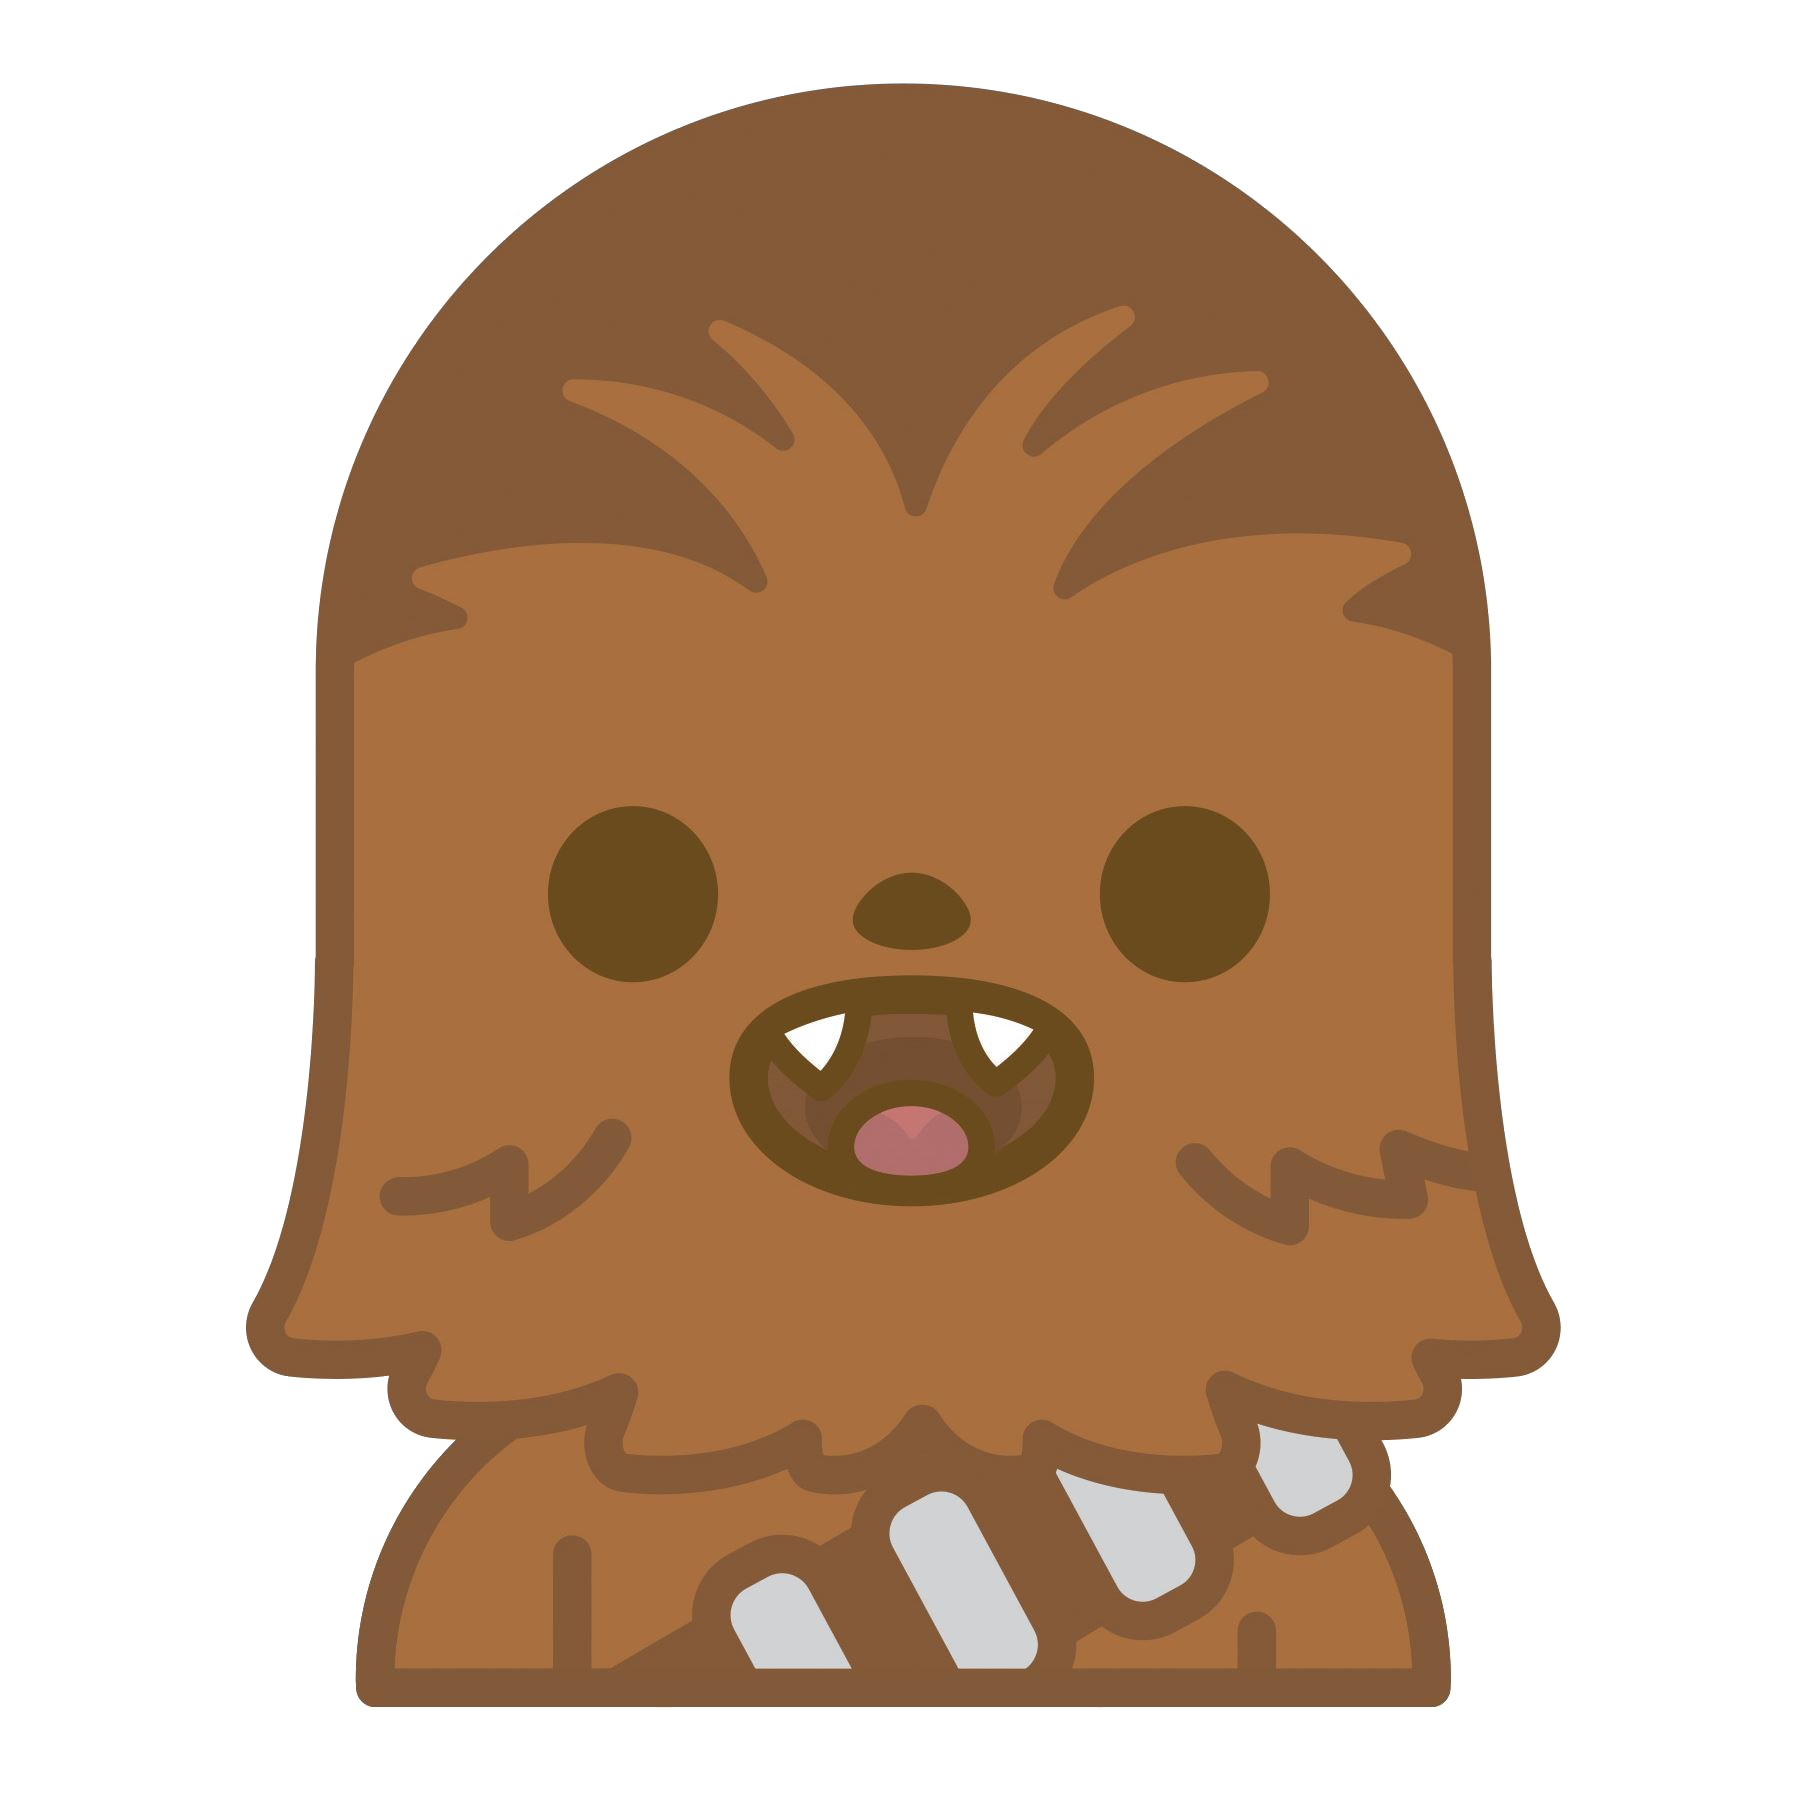 svg freeuse library Wars clipart. Star emoji chewbacca .